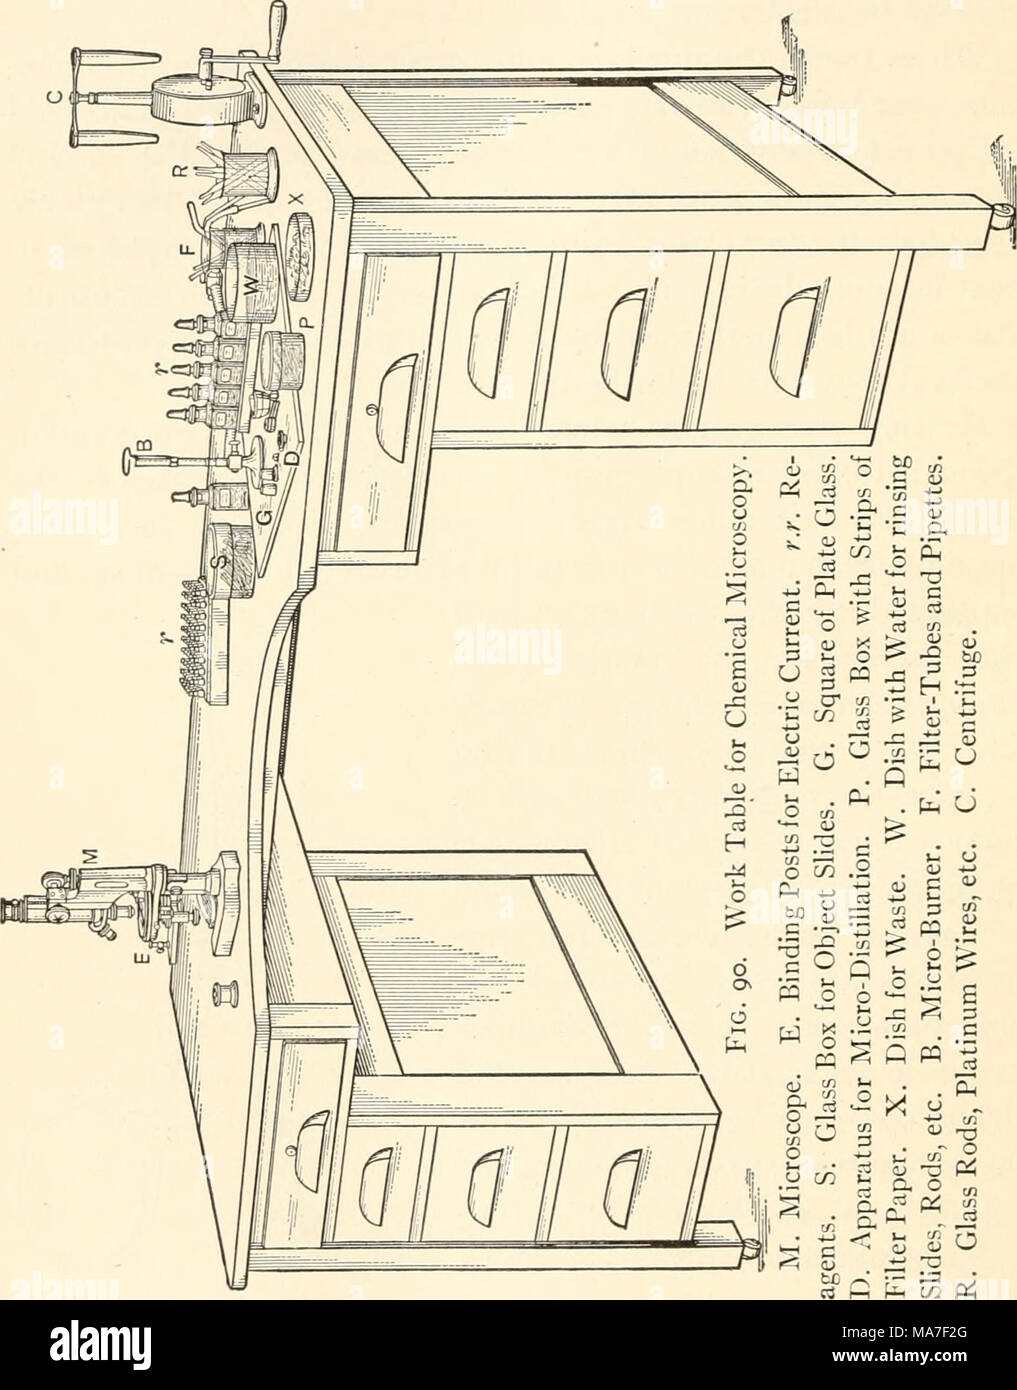 Elementary Chemical Microscopy Work Tables The Type Of Microscope Wiring Diagram Table Chosen By Chemist Upon Which To Place His Instruments And Apparatus For Micro